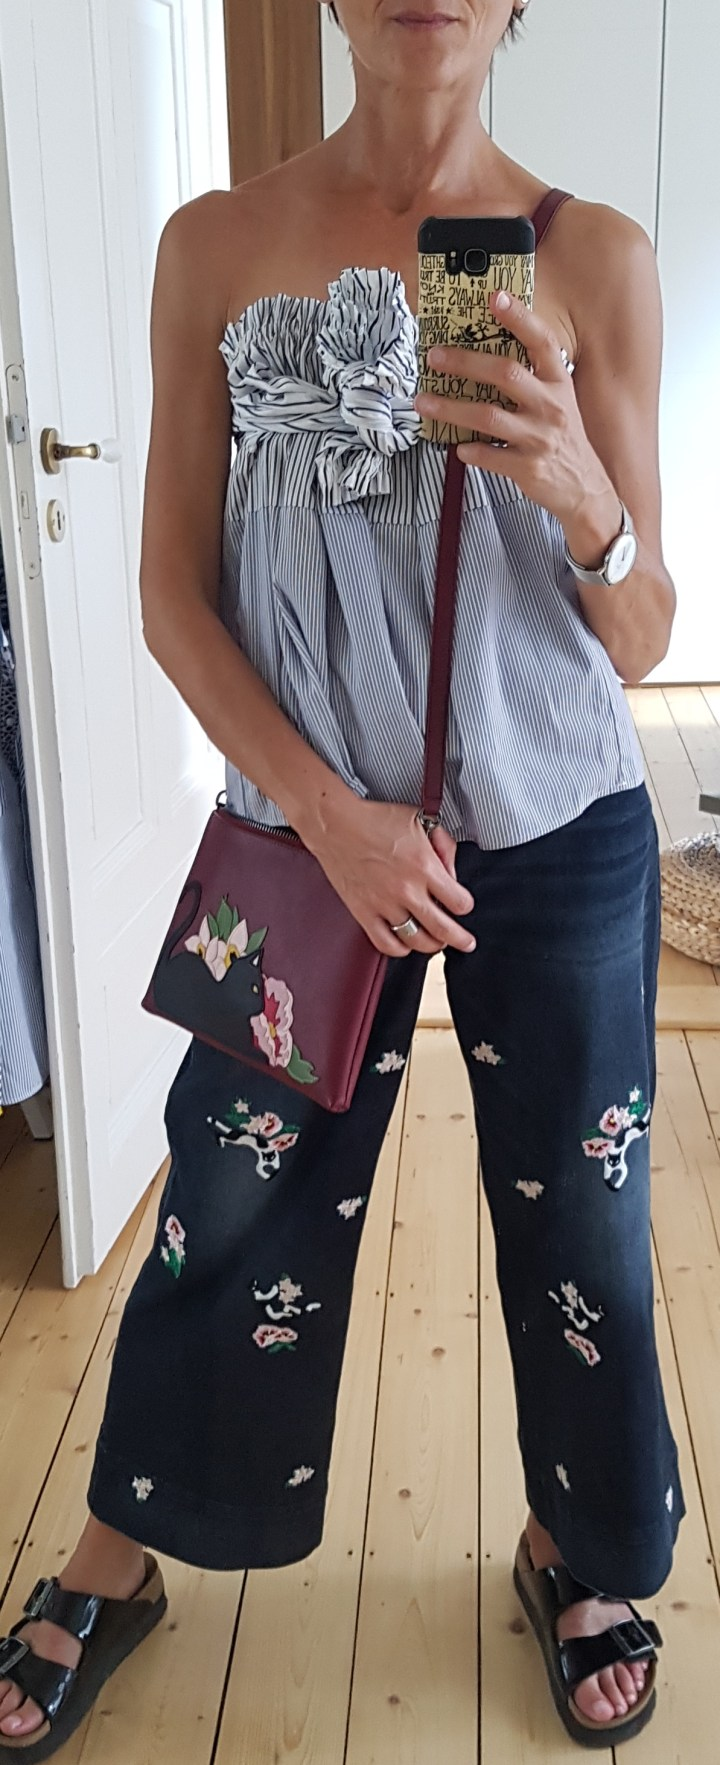 Outfit of the day – Schulterfreie Bluse?!